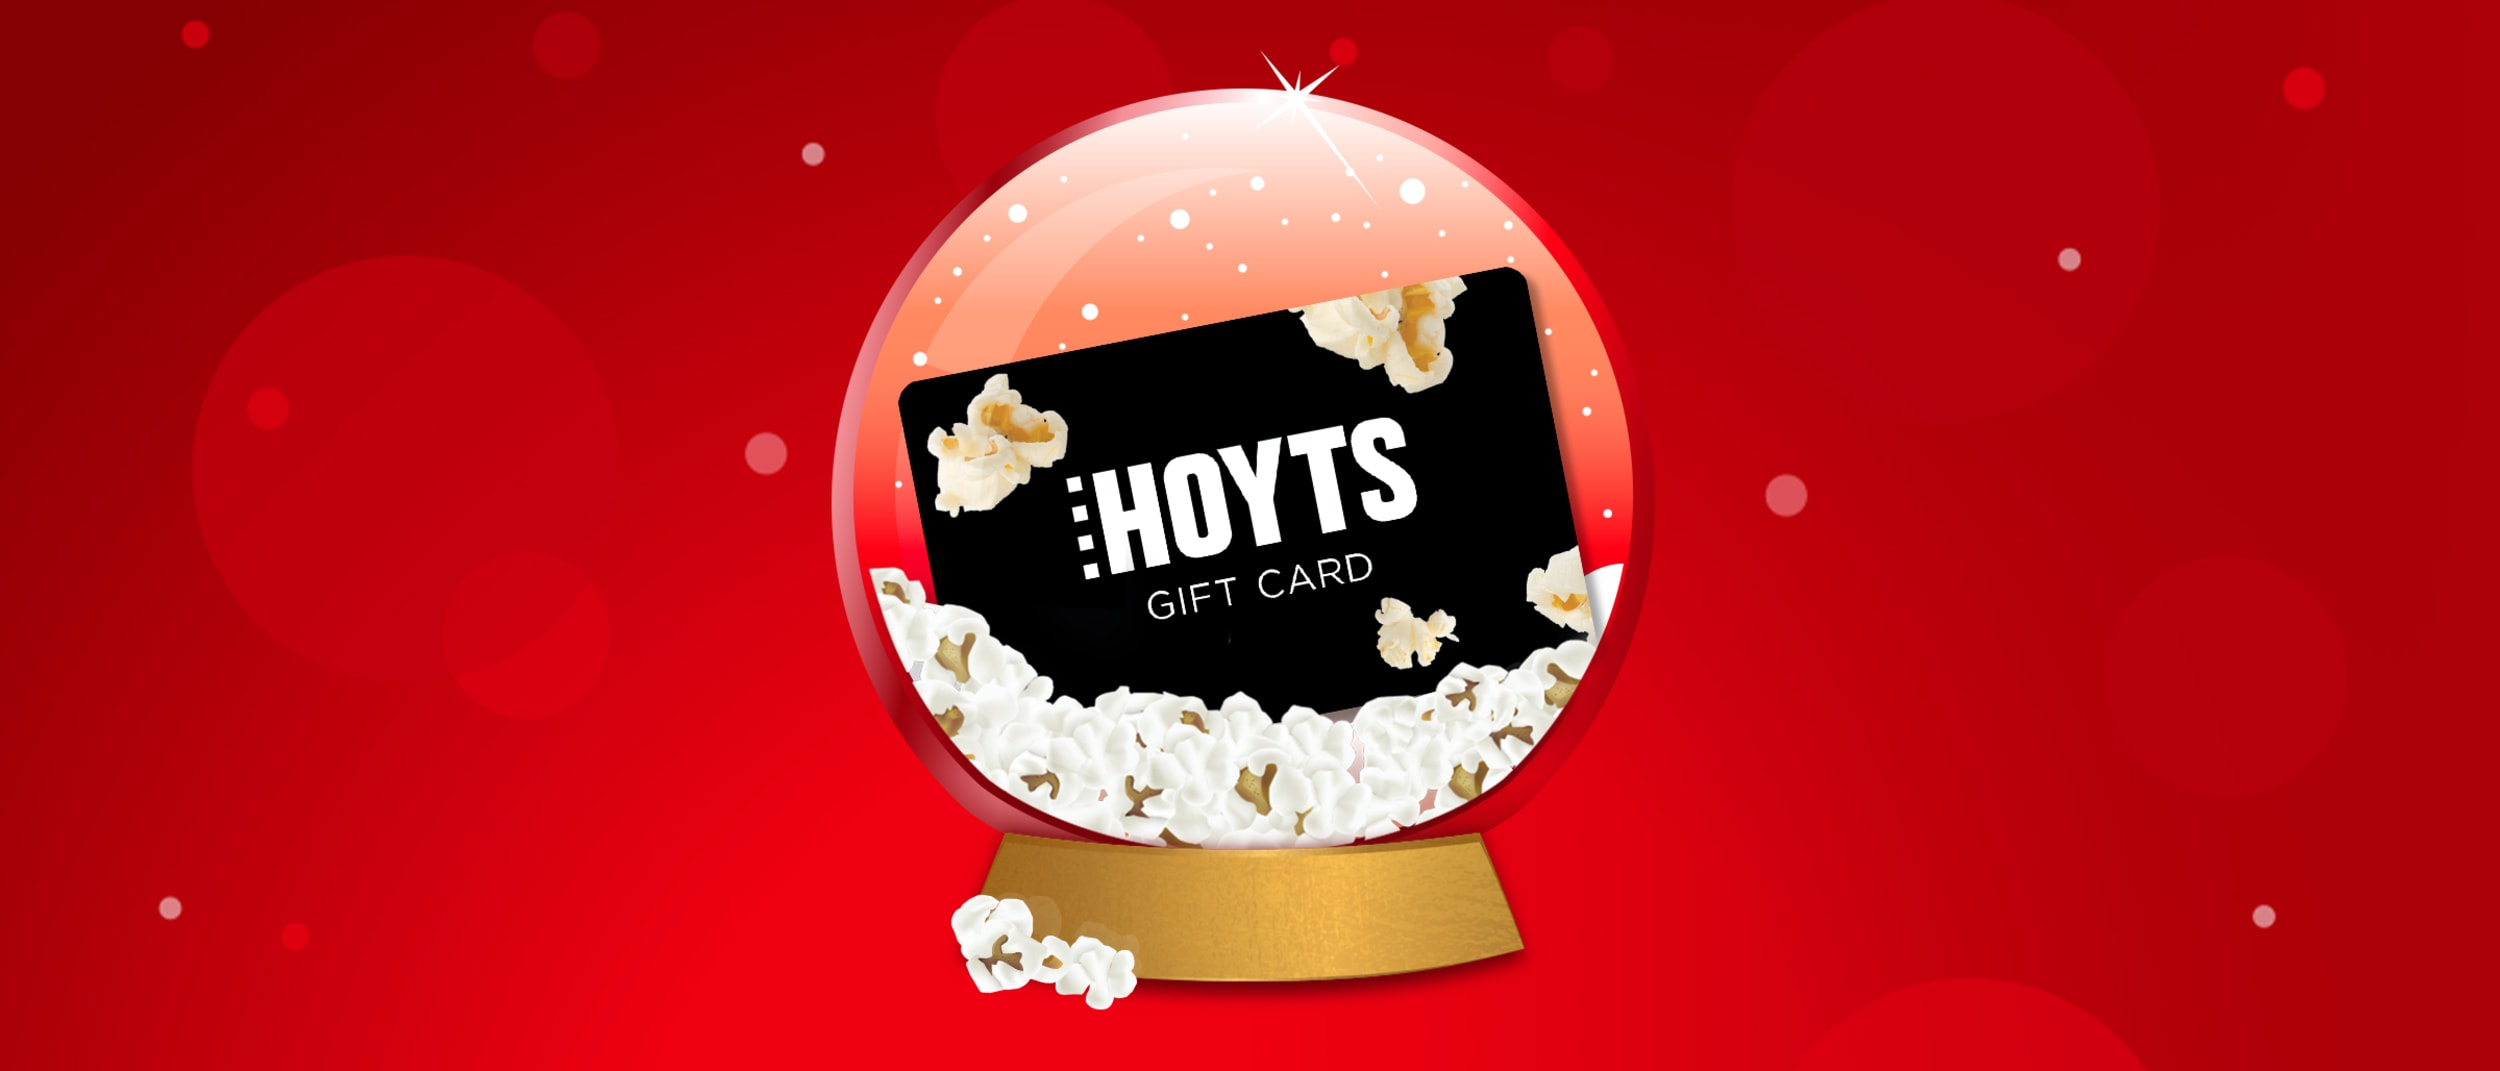 HOYTS: Christmas Gift Cards